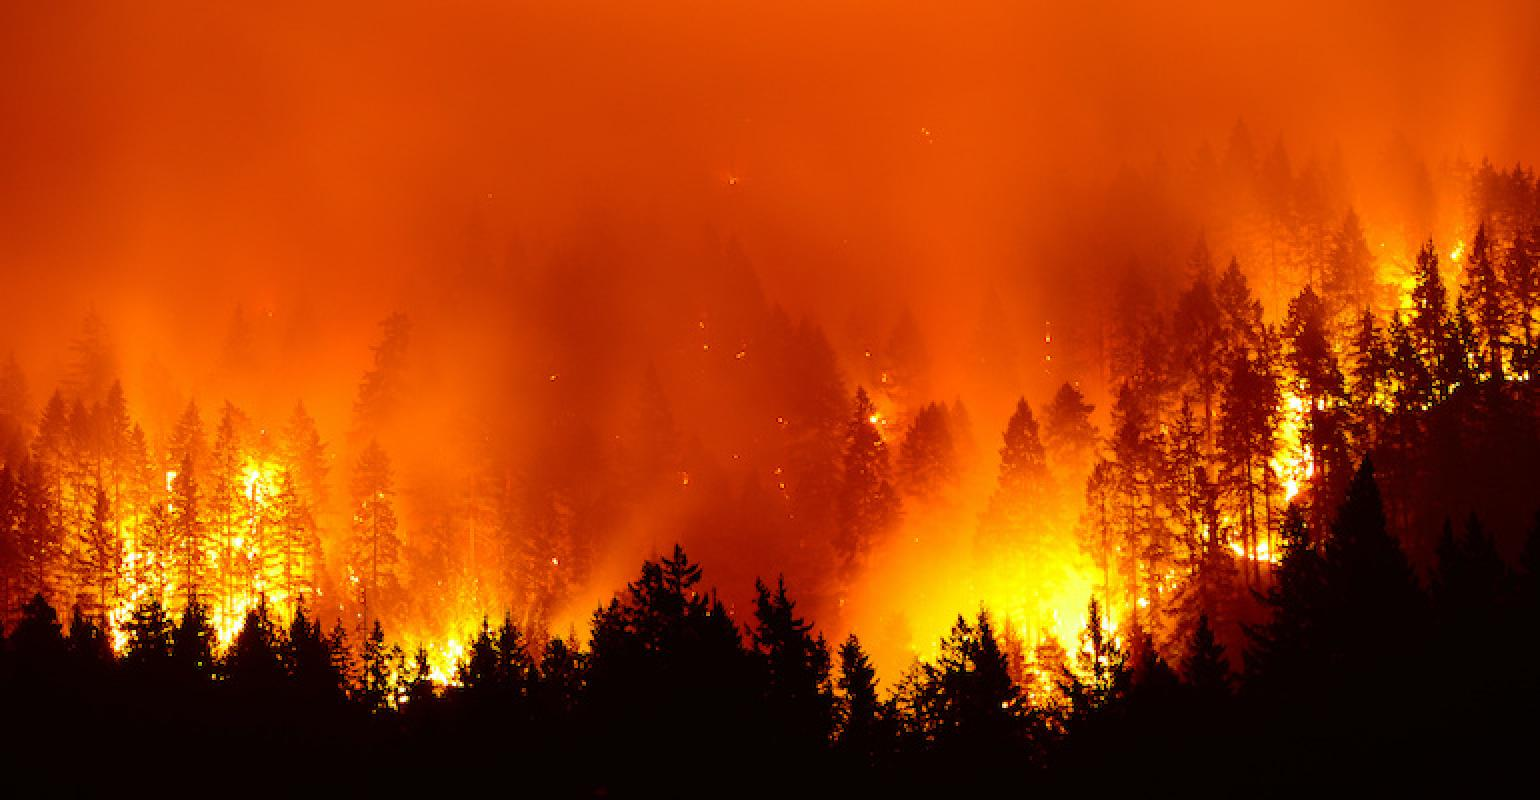 Will Technology Help Extinguish Raging Fires in the West?